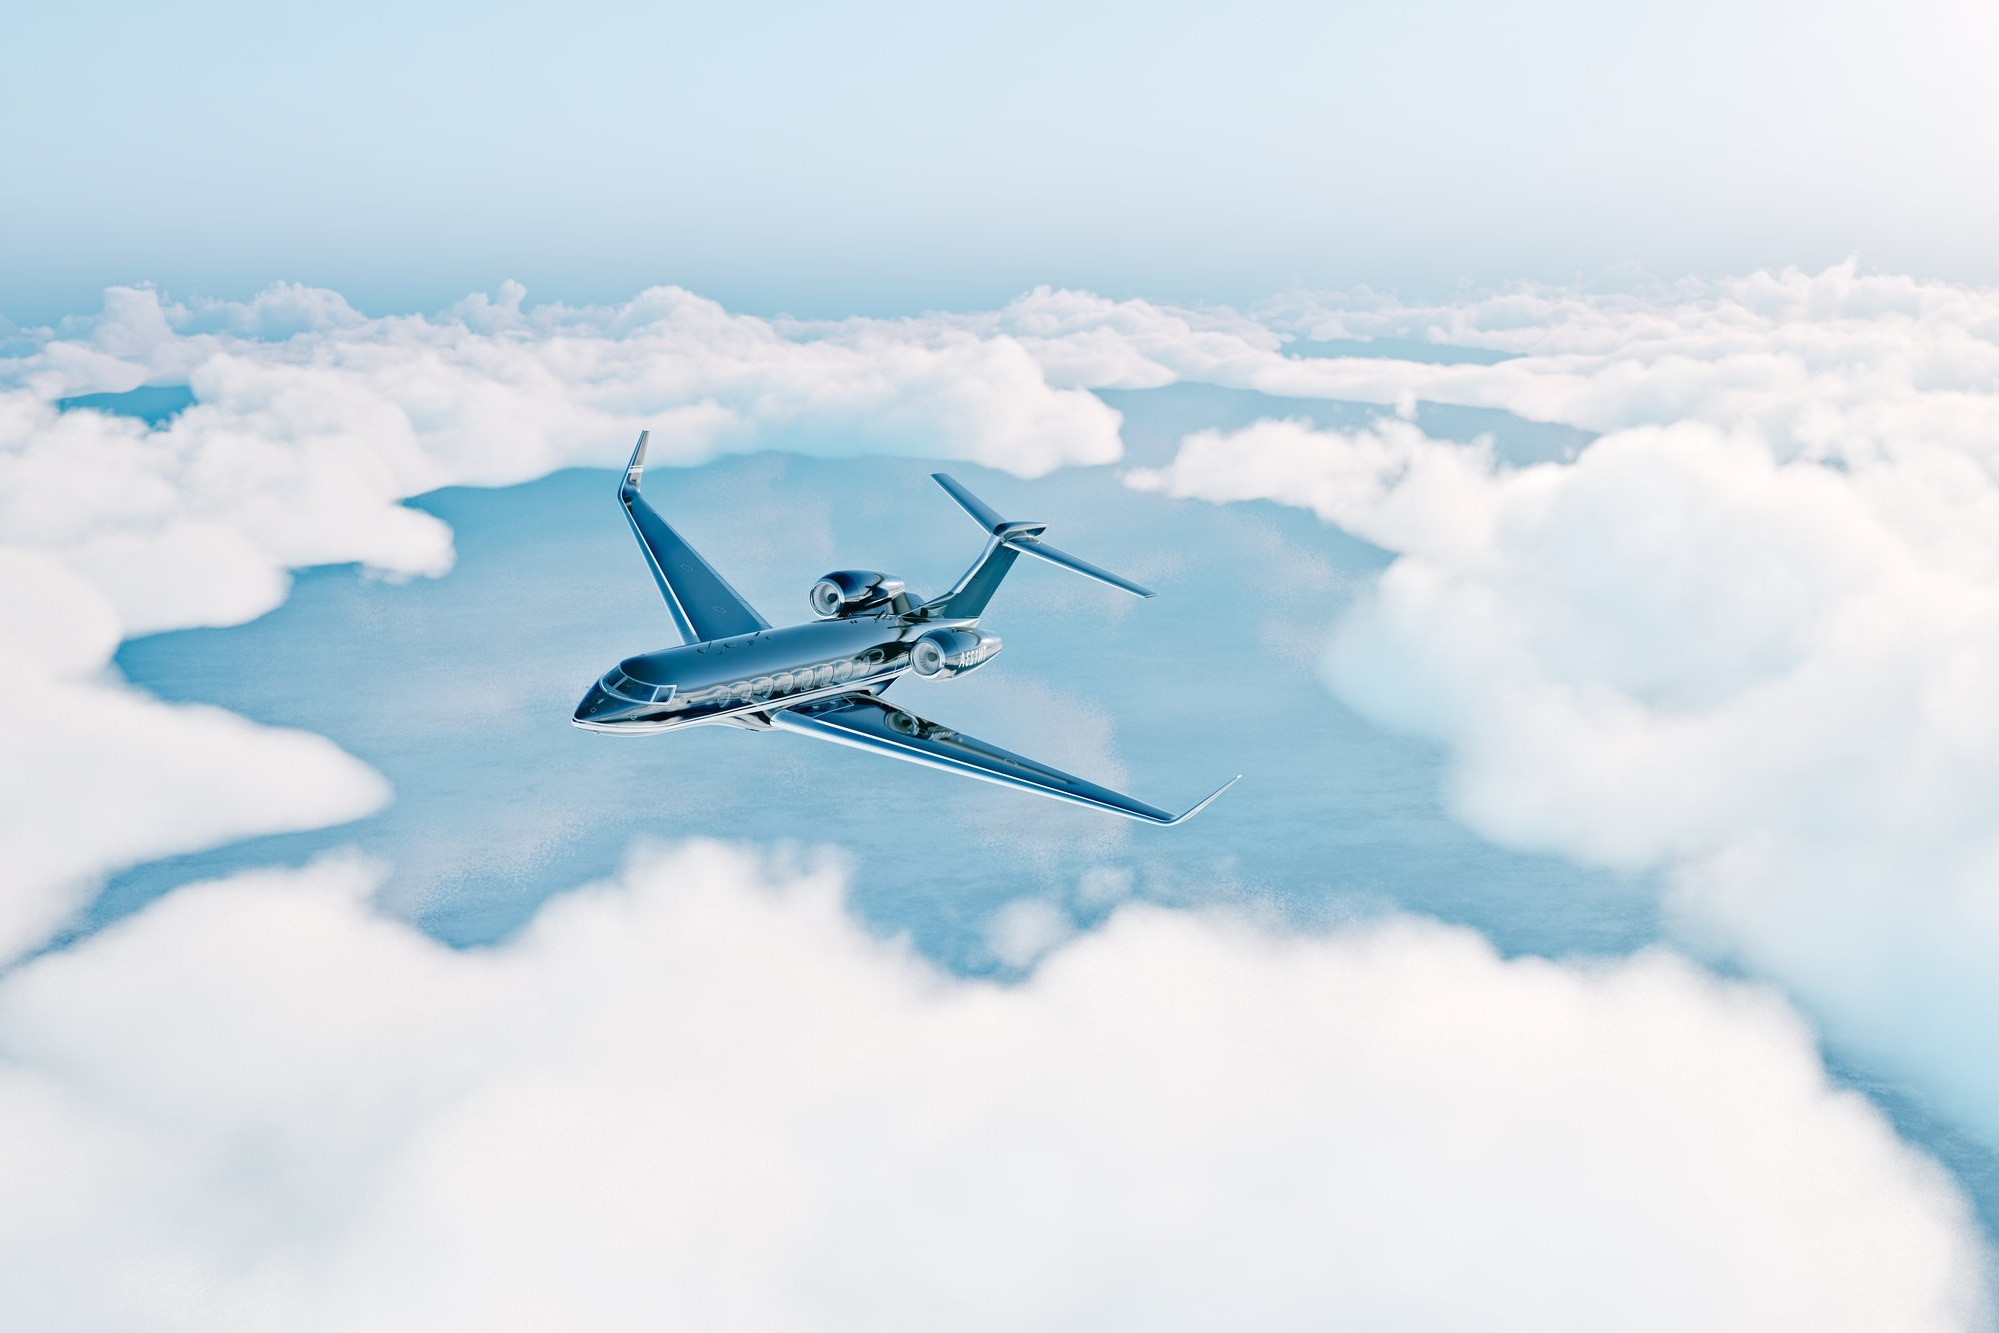 simplicity - At SHY we are committed to keeping your booking and payment experience as simple as possible. You can fly with us as frequently as you wish. There are no hidden fees or membership costs, our pricing is straightforward and transparent. You only pay for what you use, when you use it.